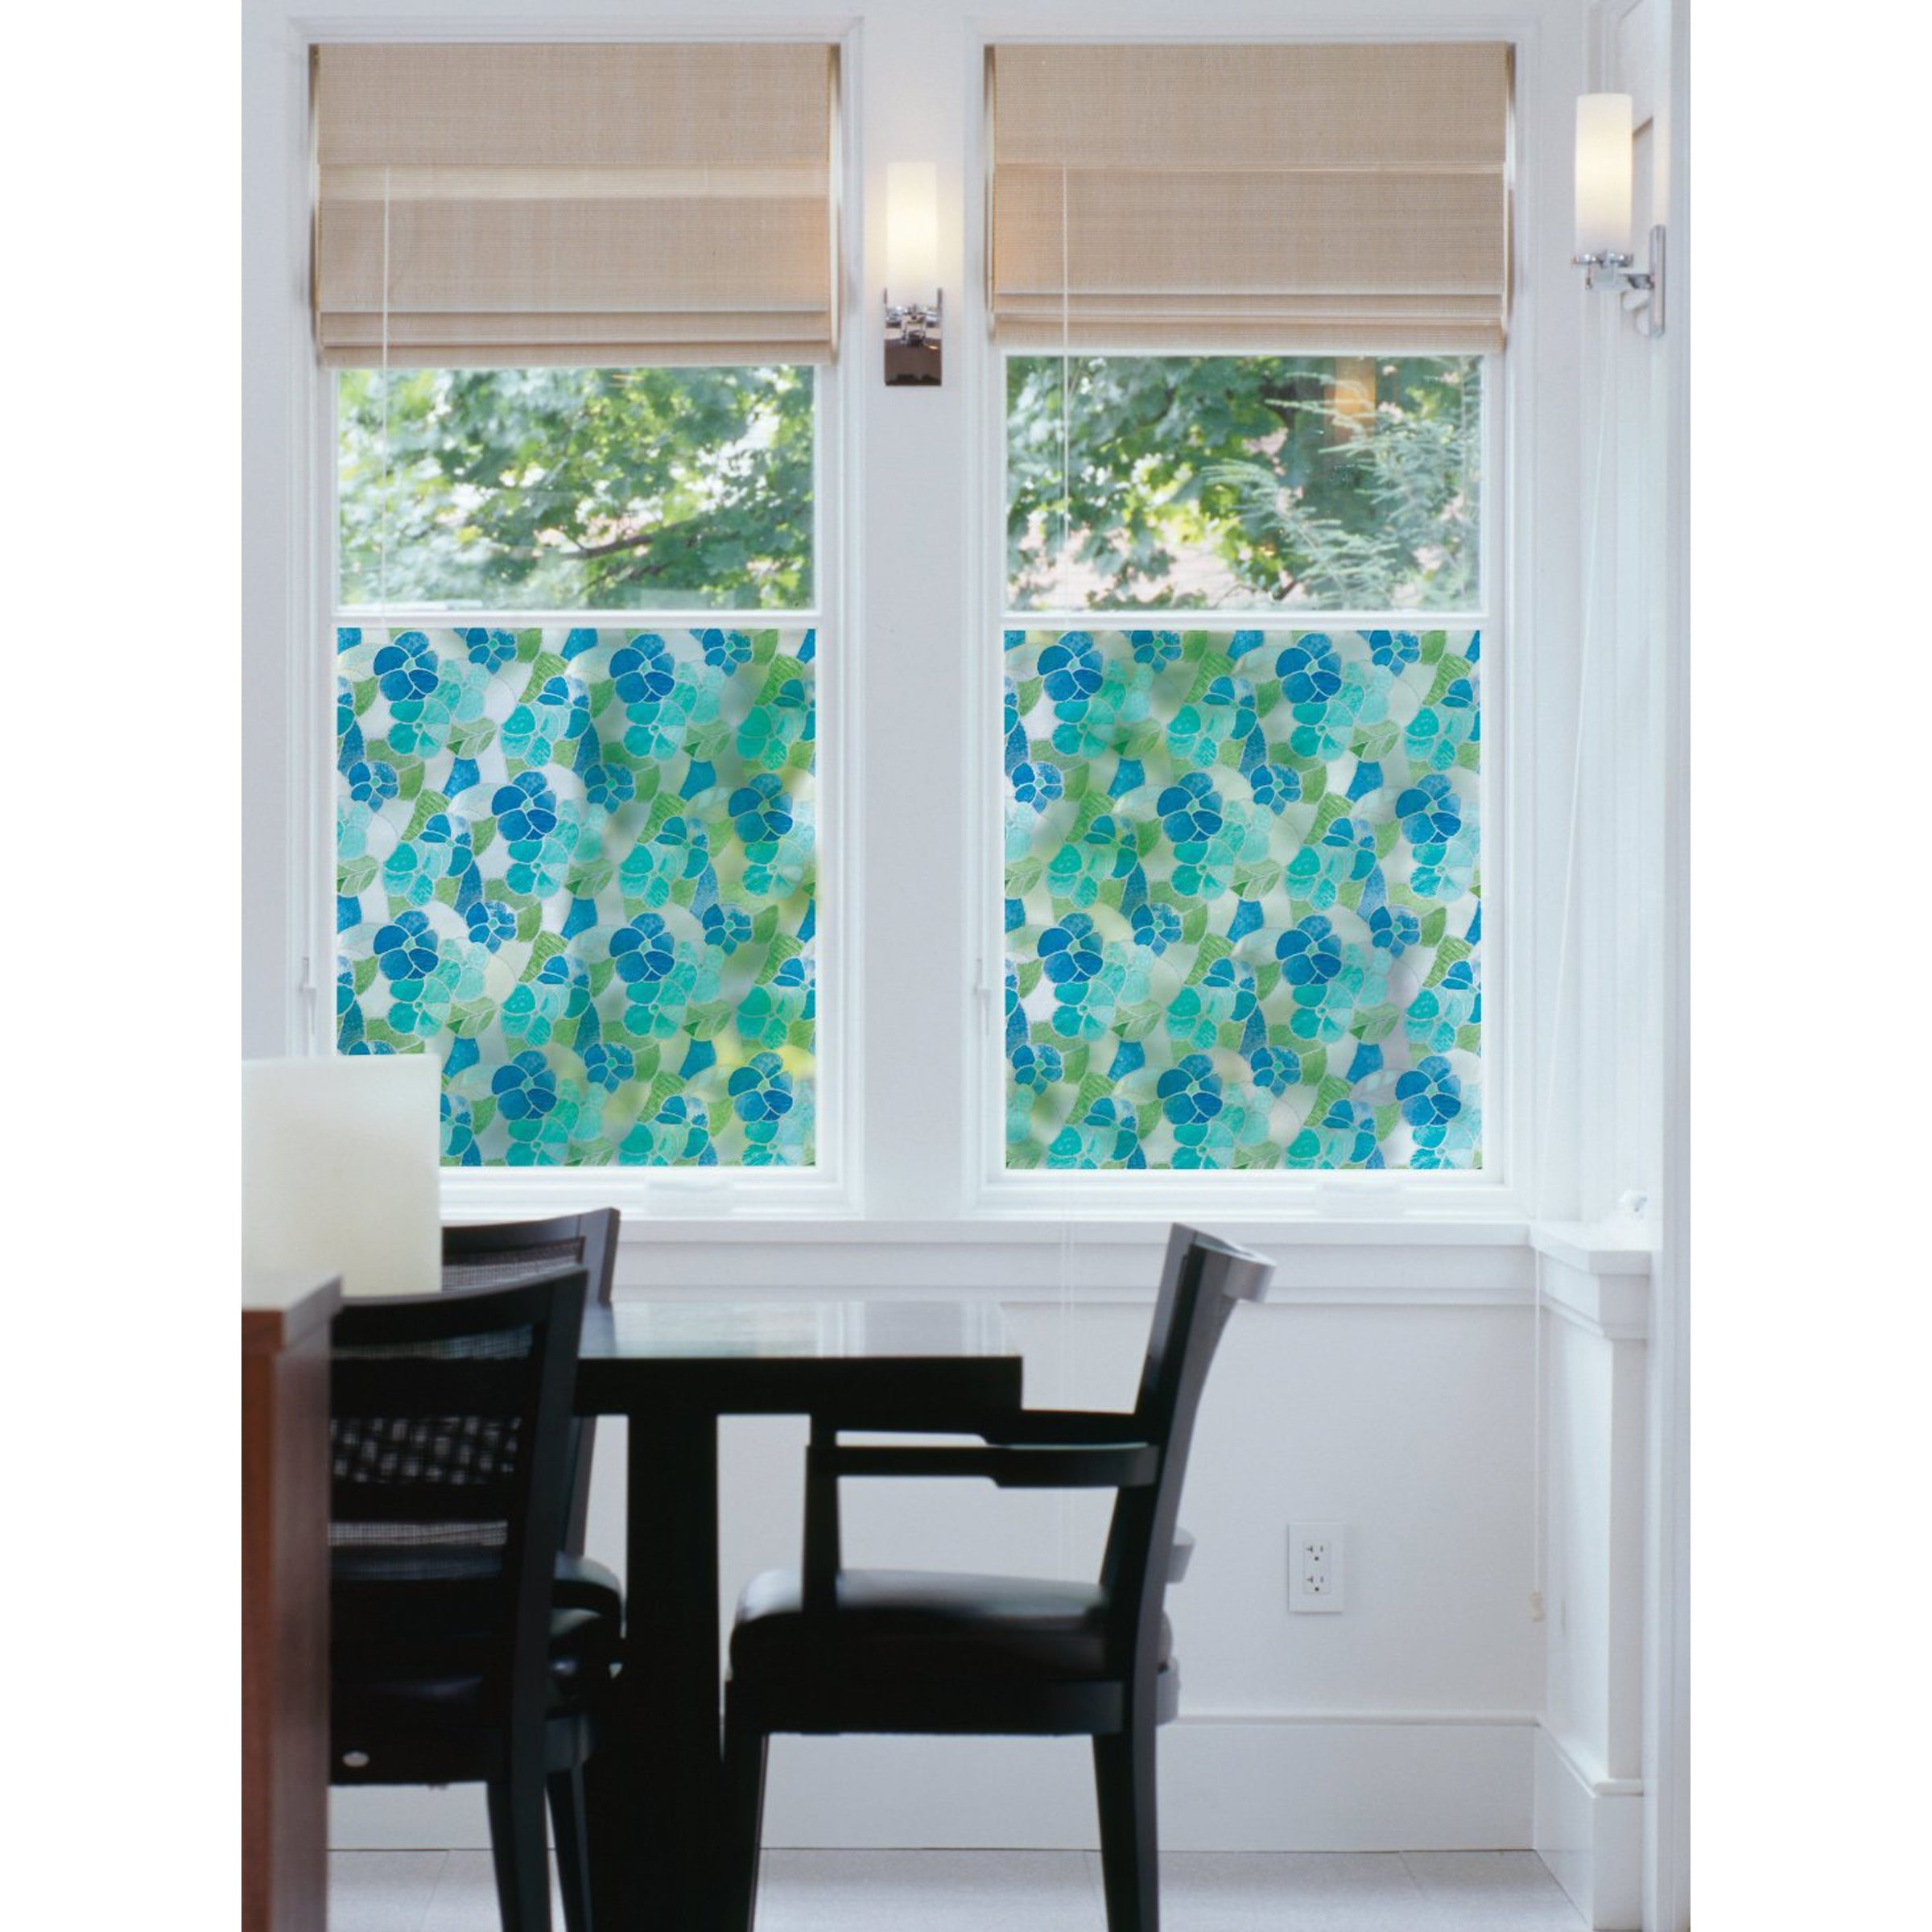 Brewster Blue and Green Stained Glass Window Film (Multic...